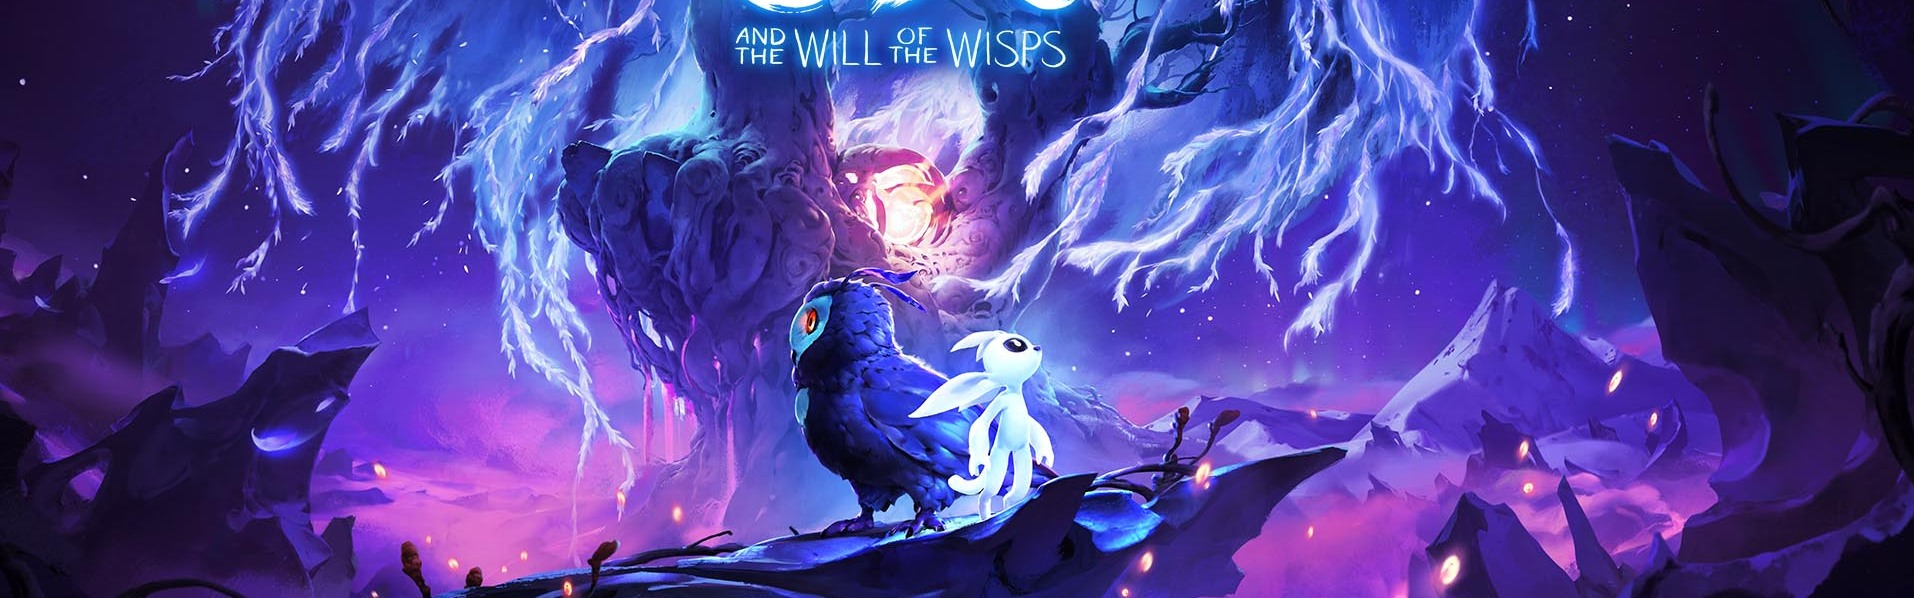 Ori and the Will of the Wisps PC/XBOX LIVE Key ARGENTINA